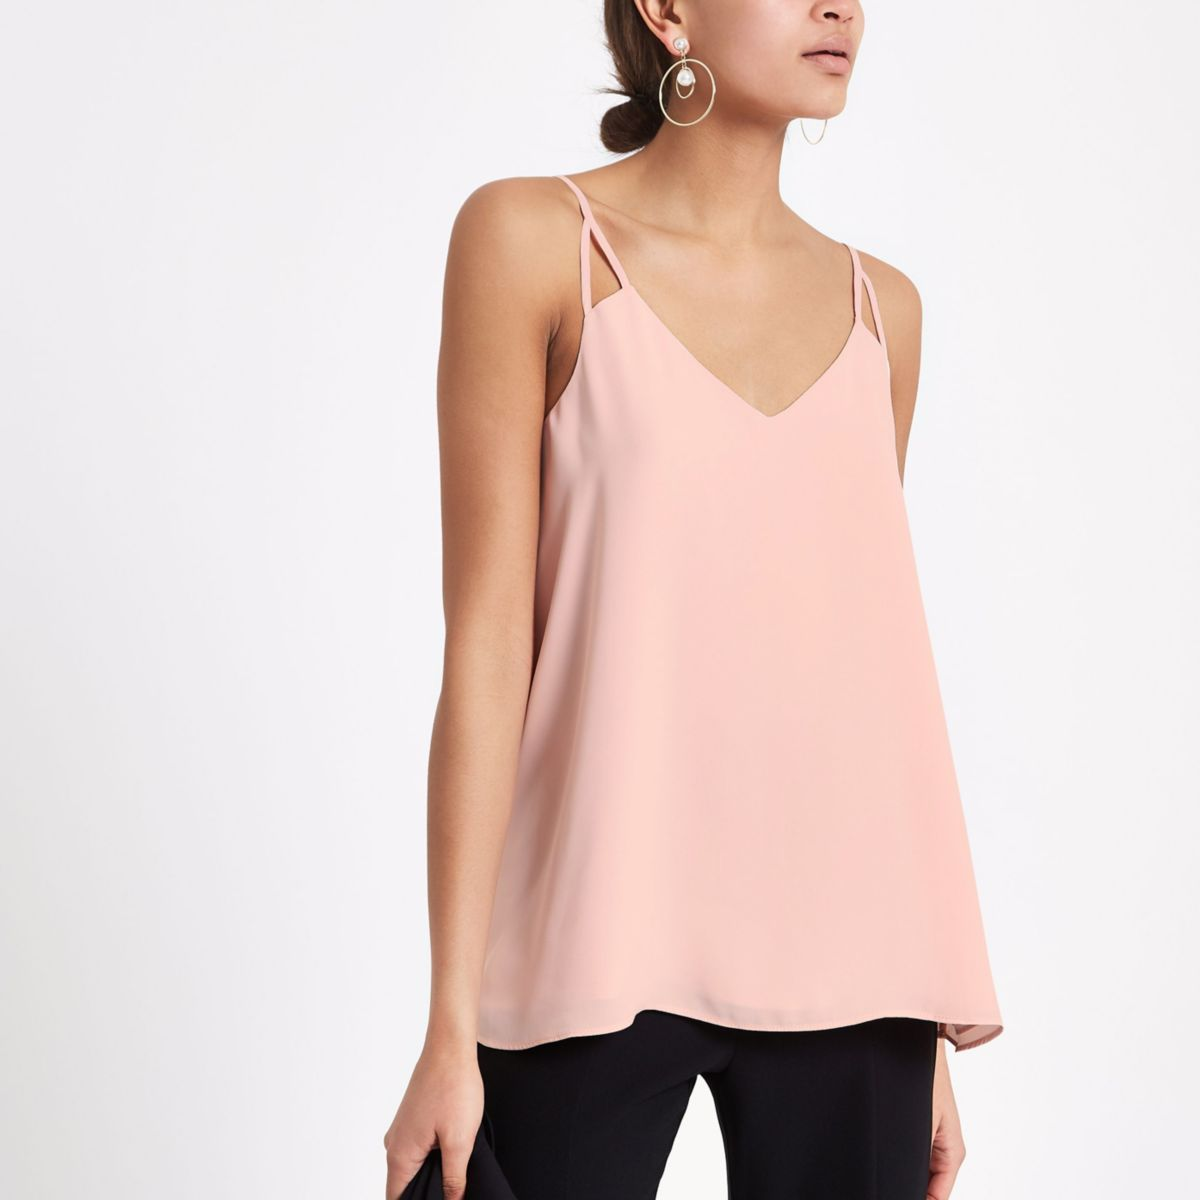 pink lace cropped top jacket / nude lace top / light pink camisole with bow tie / bow tie jacket / bow tie top EELT. 5 out of 5 stars () $ Free shipping Favorite Add to See similar items + More like this. Light Pastel Pink Eyelet Ruffled Strapless Tank Top with Beautiful Matching Tie Sash in Back - Size Large (Juniors).